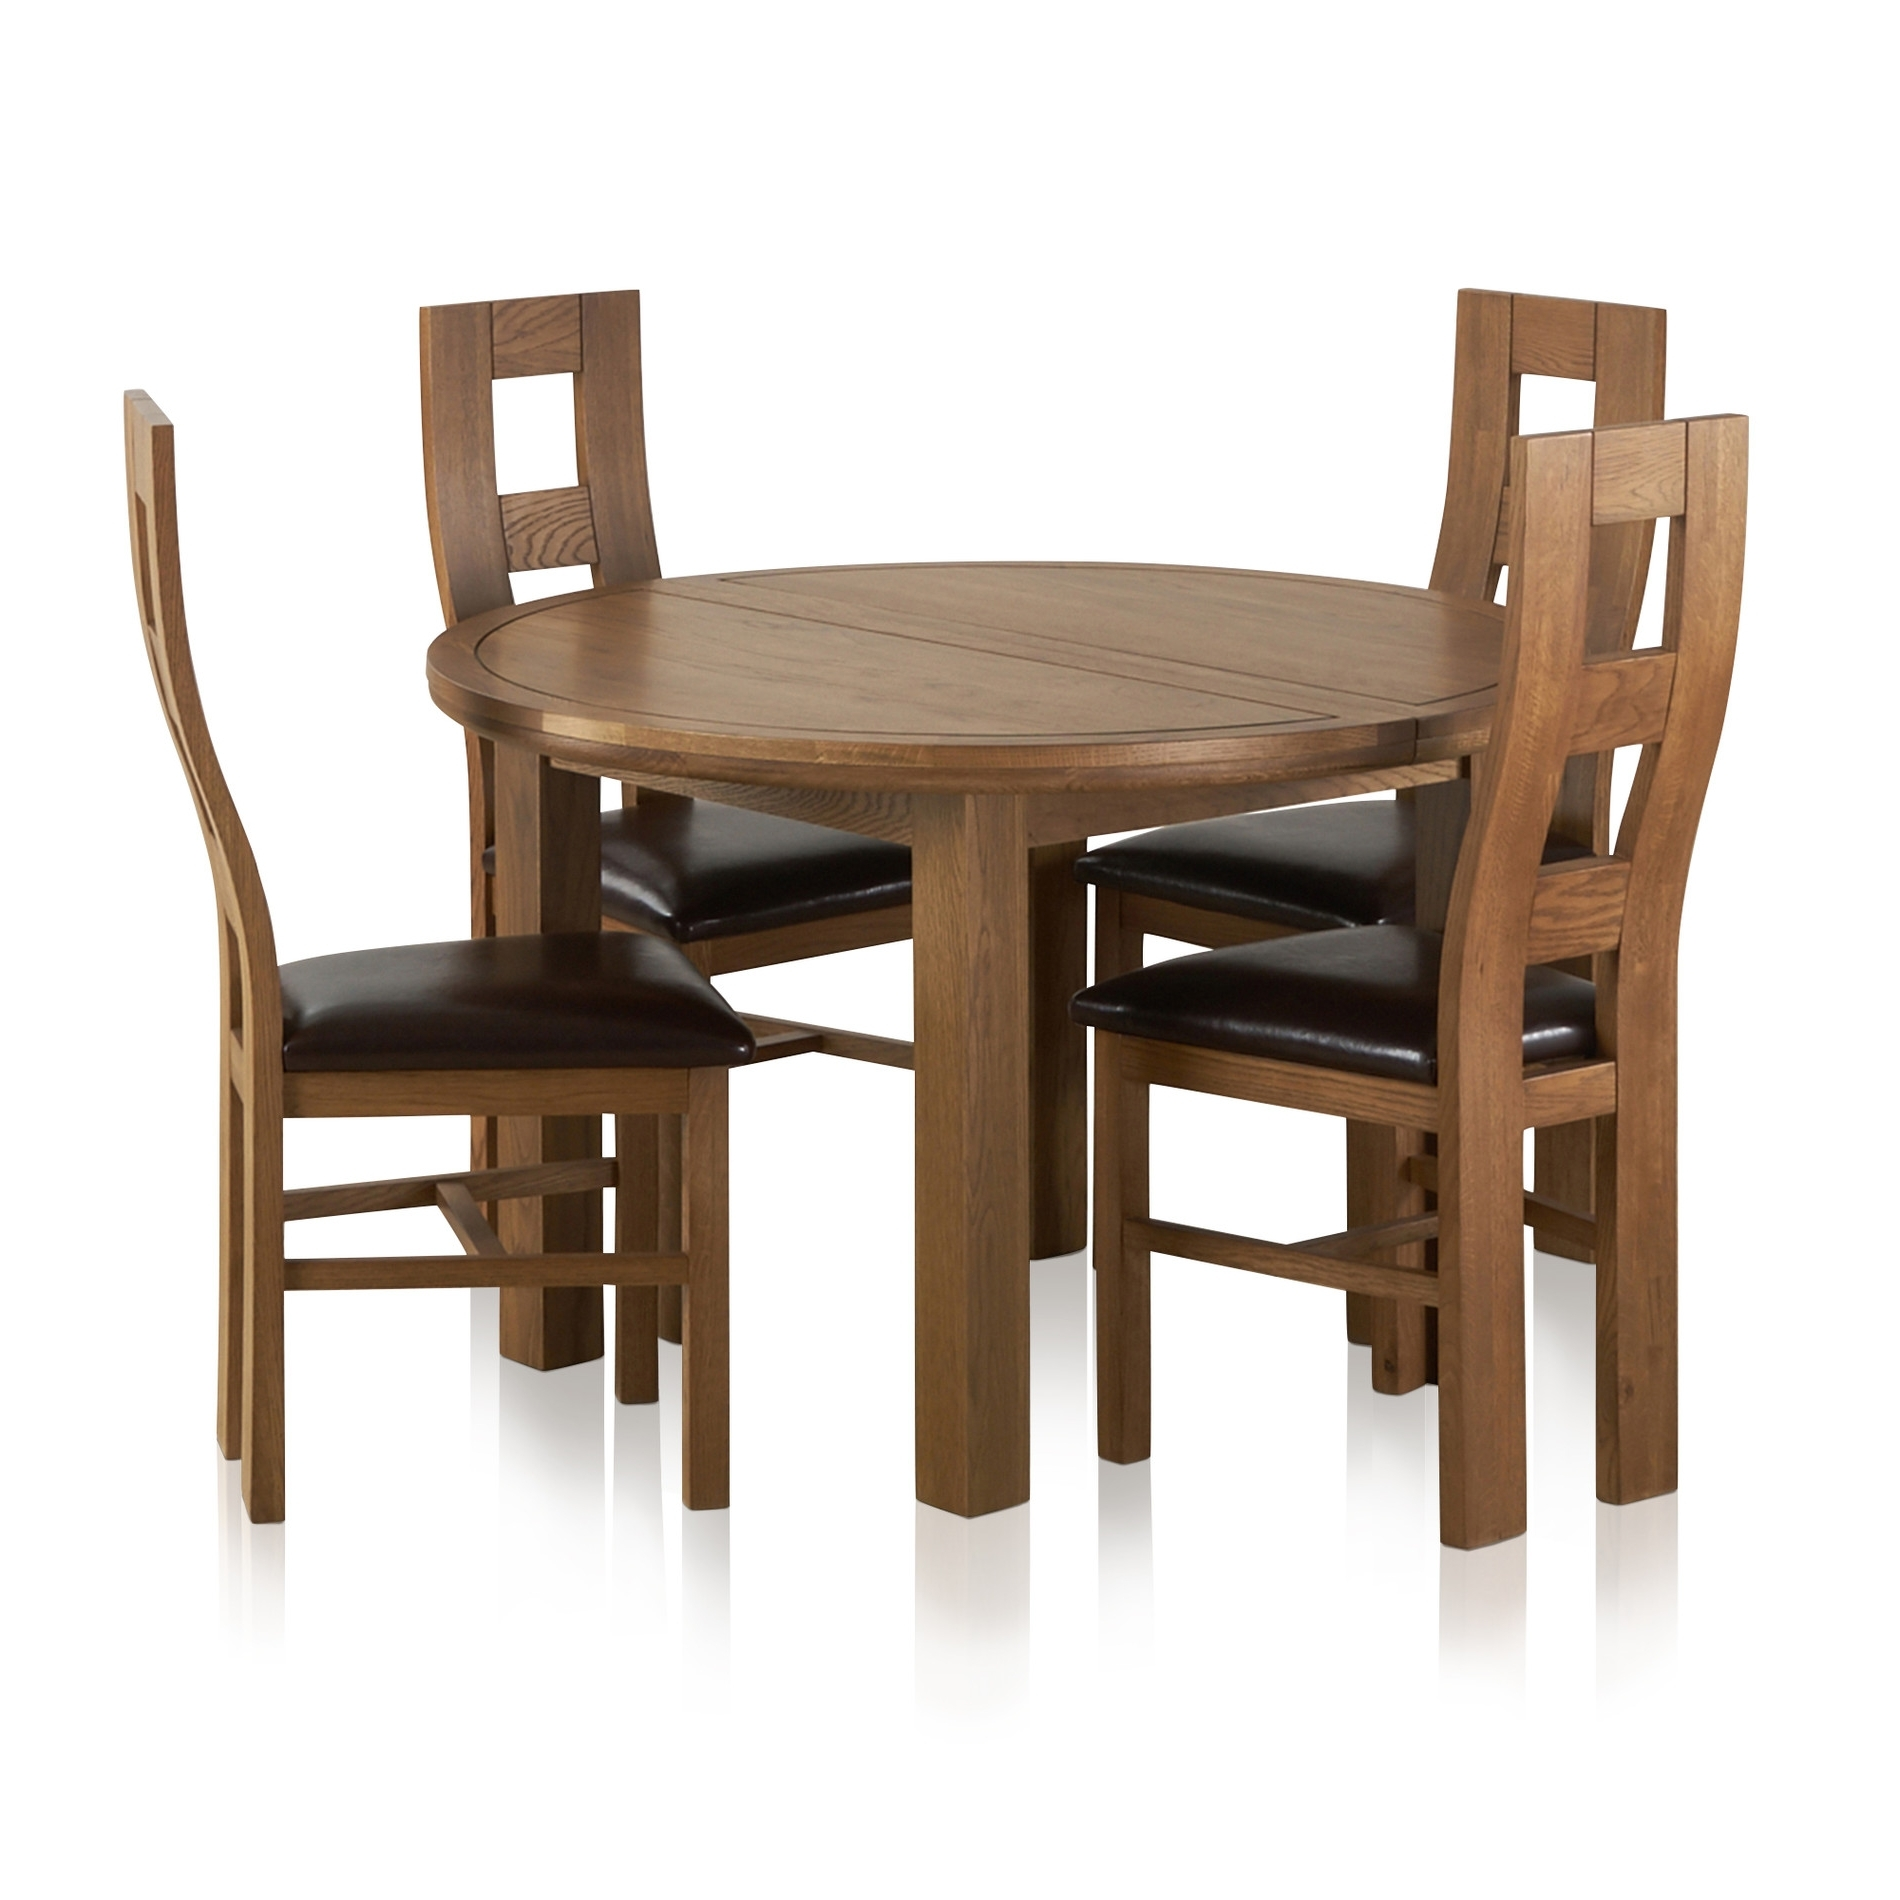 Favorite Knightsbridge Round Extending Dining Table + 4 Leather Chairs Intended For Round Oak Dining Tables And 4 Chairs (View 8 of 25)